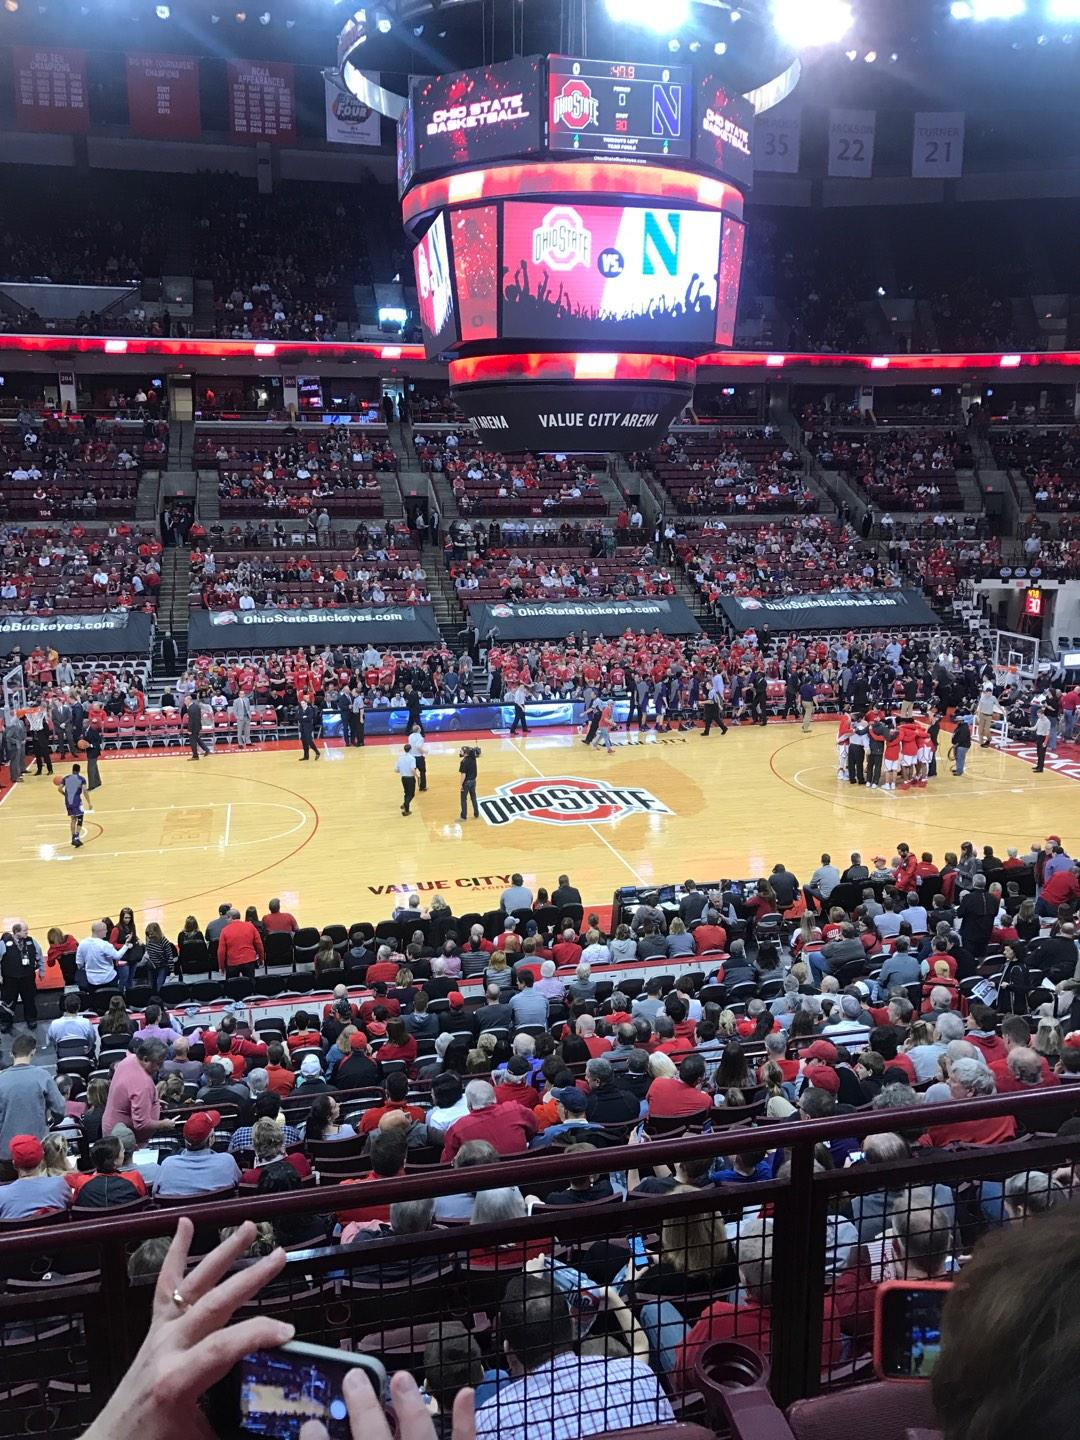 Value City Arena Section 223 Row C Seat 12